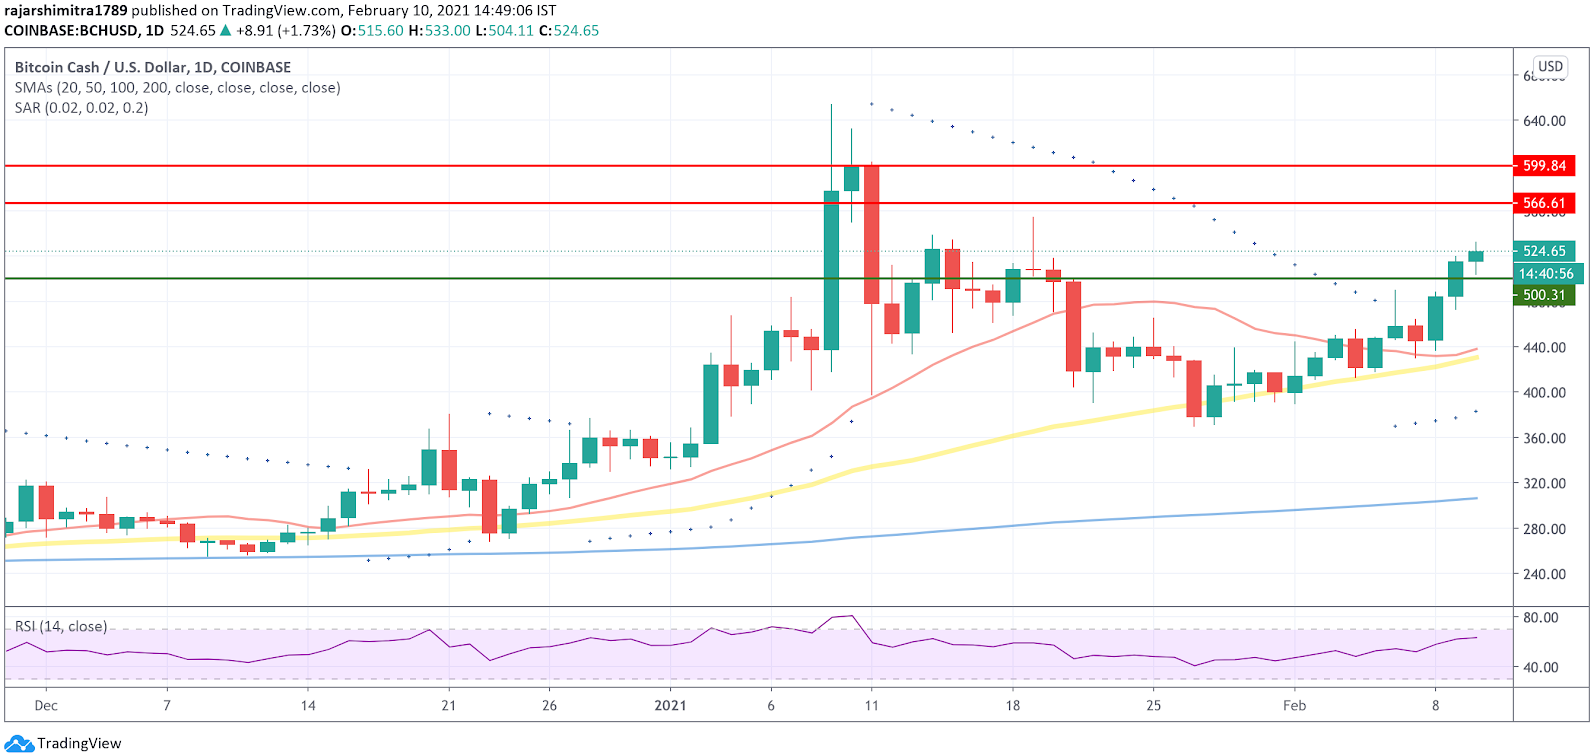 bch/usd daily chart 021121